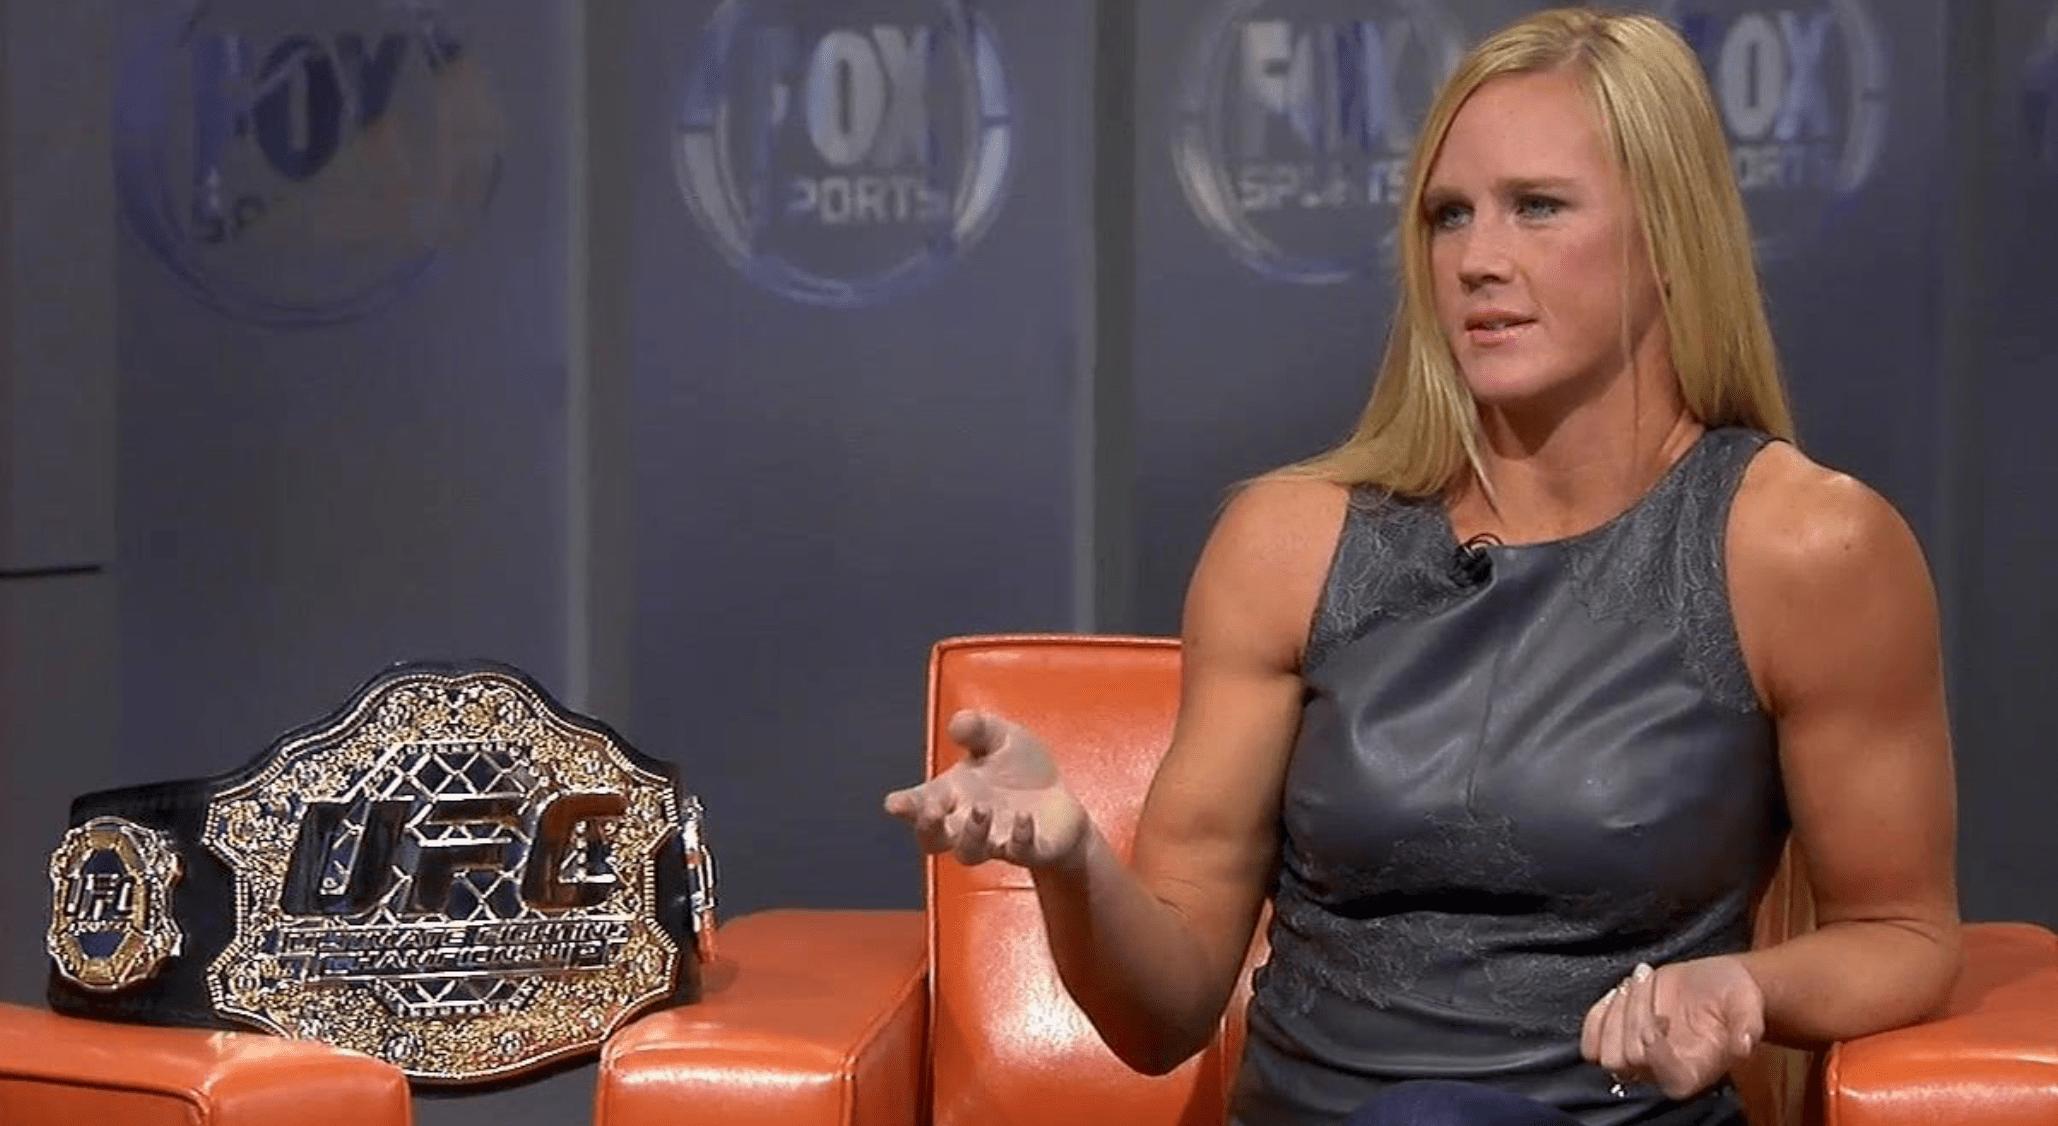 Holly Holm Signs New UFC Contract